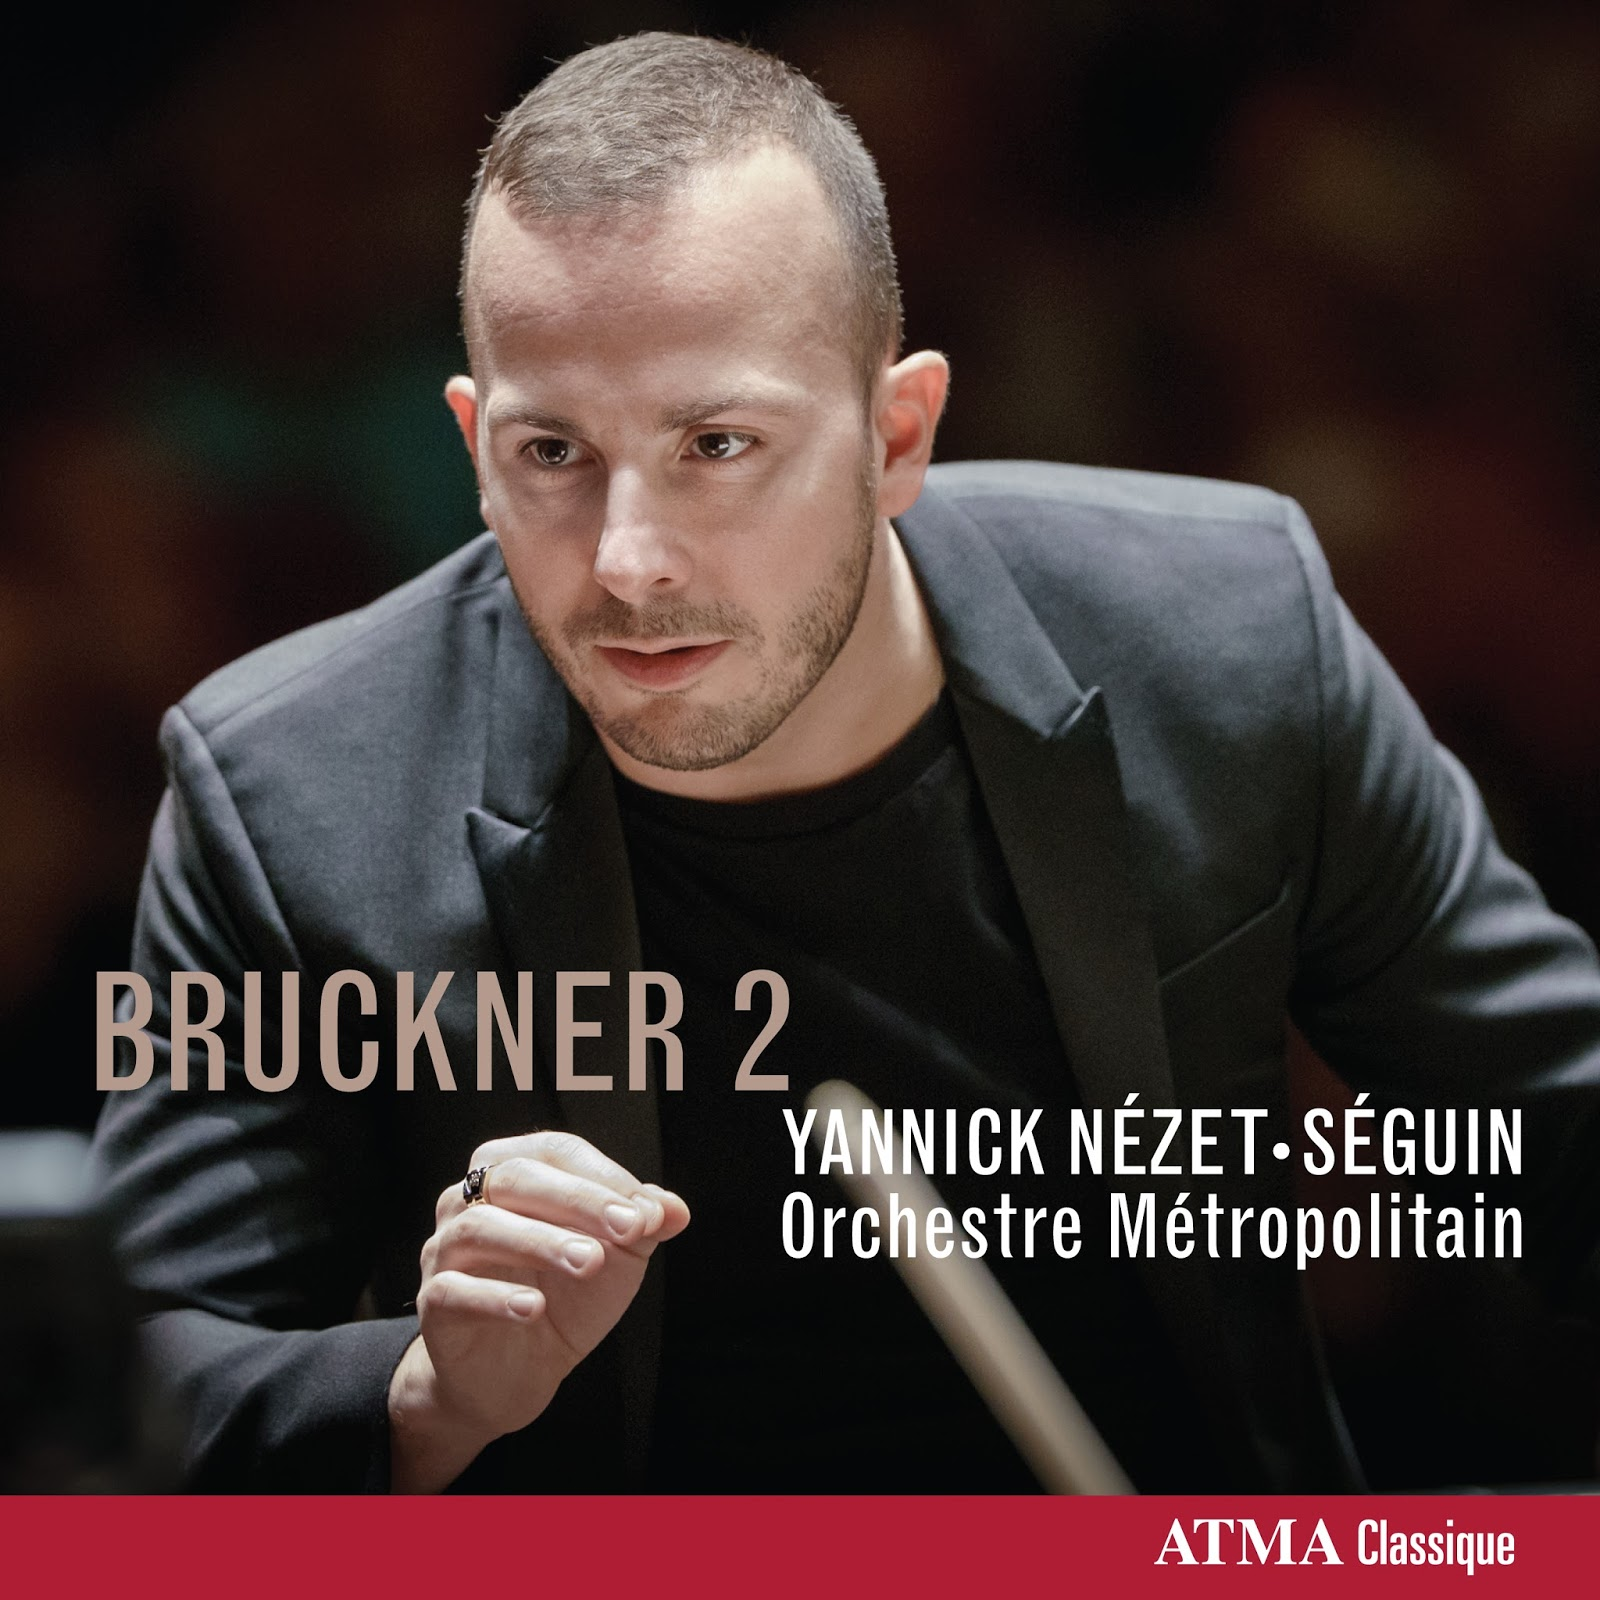 IN REVIEW: Anton Bruckner - SYMPHONY NO. 2 IN C MINOR, WAB 102 (ATMA Classique ACD2 2708)